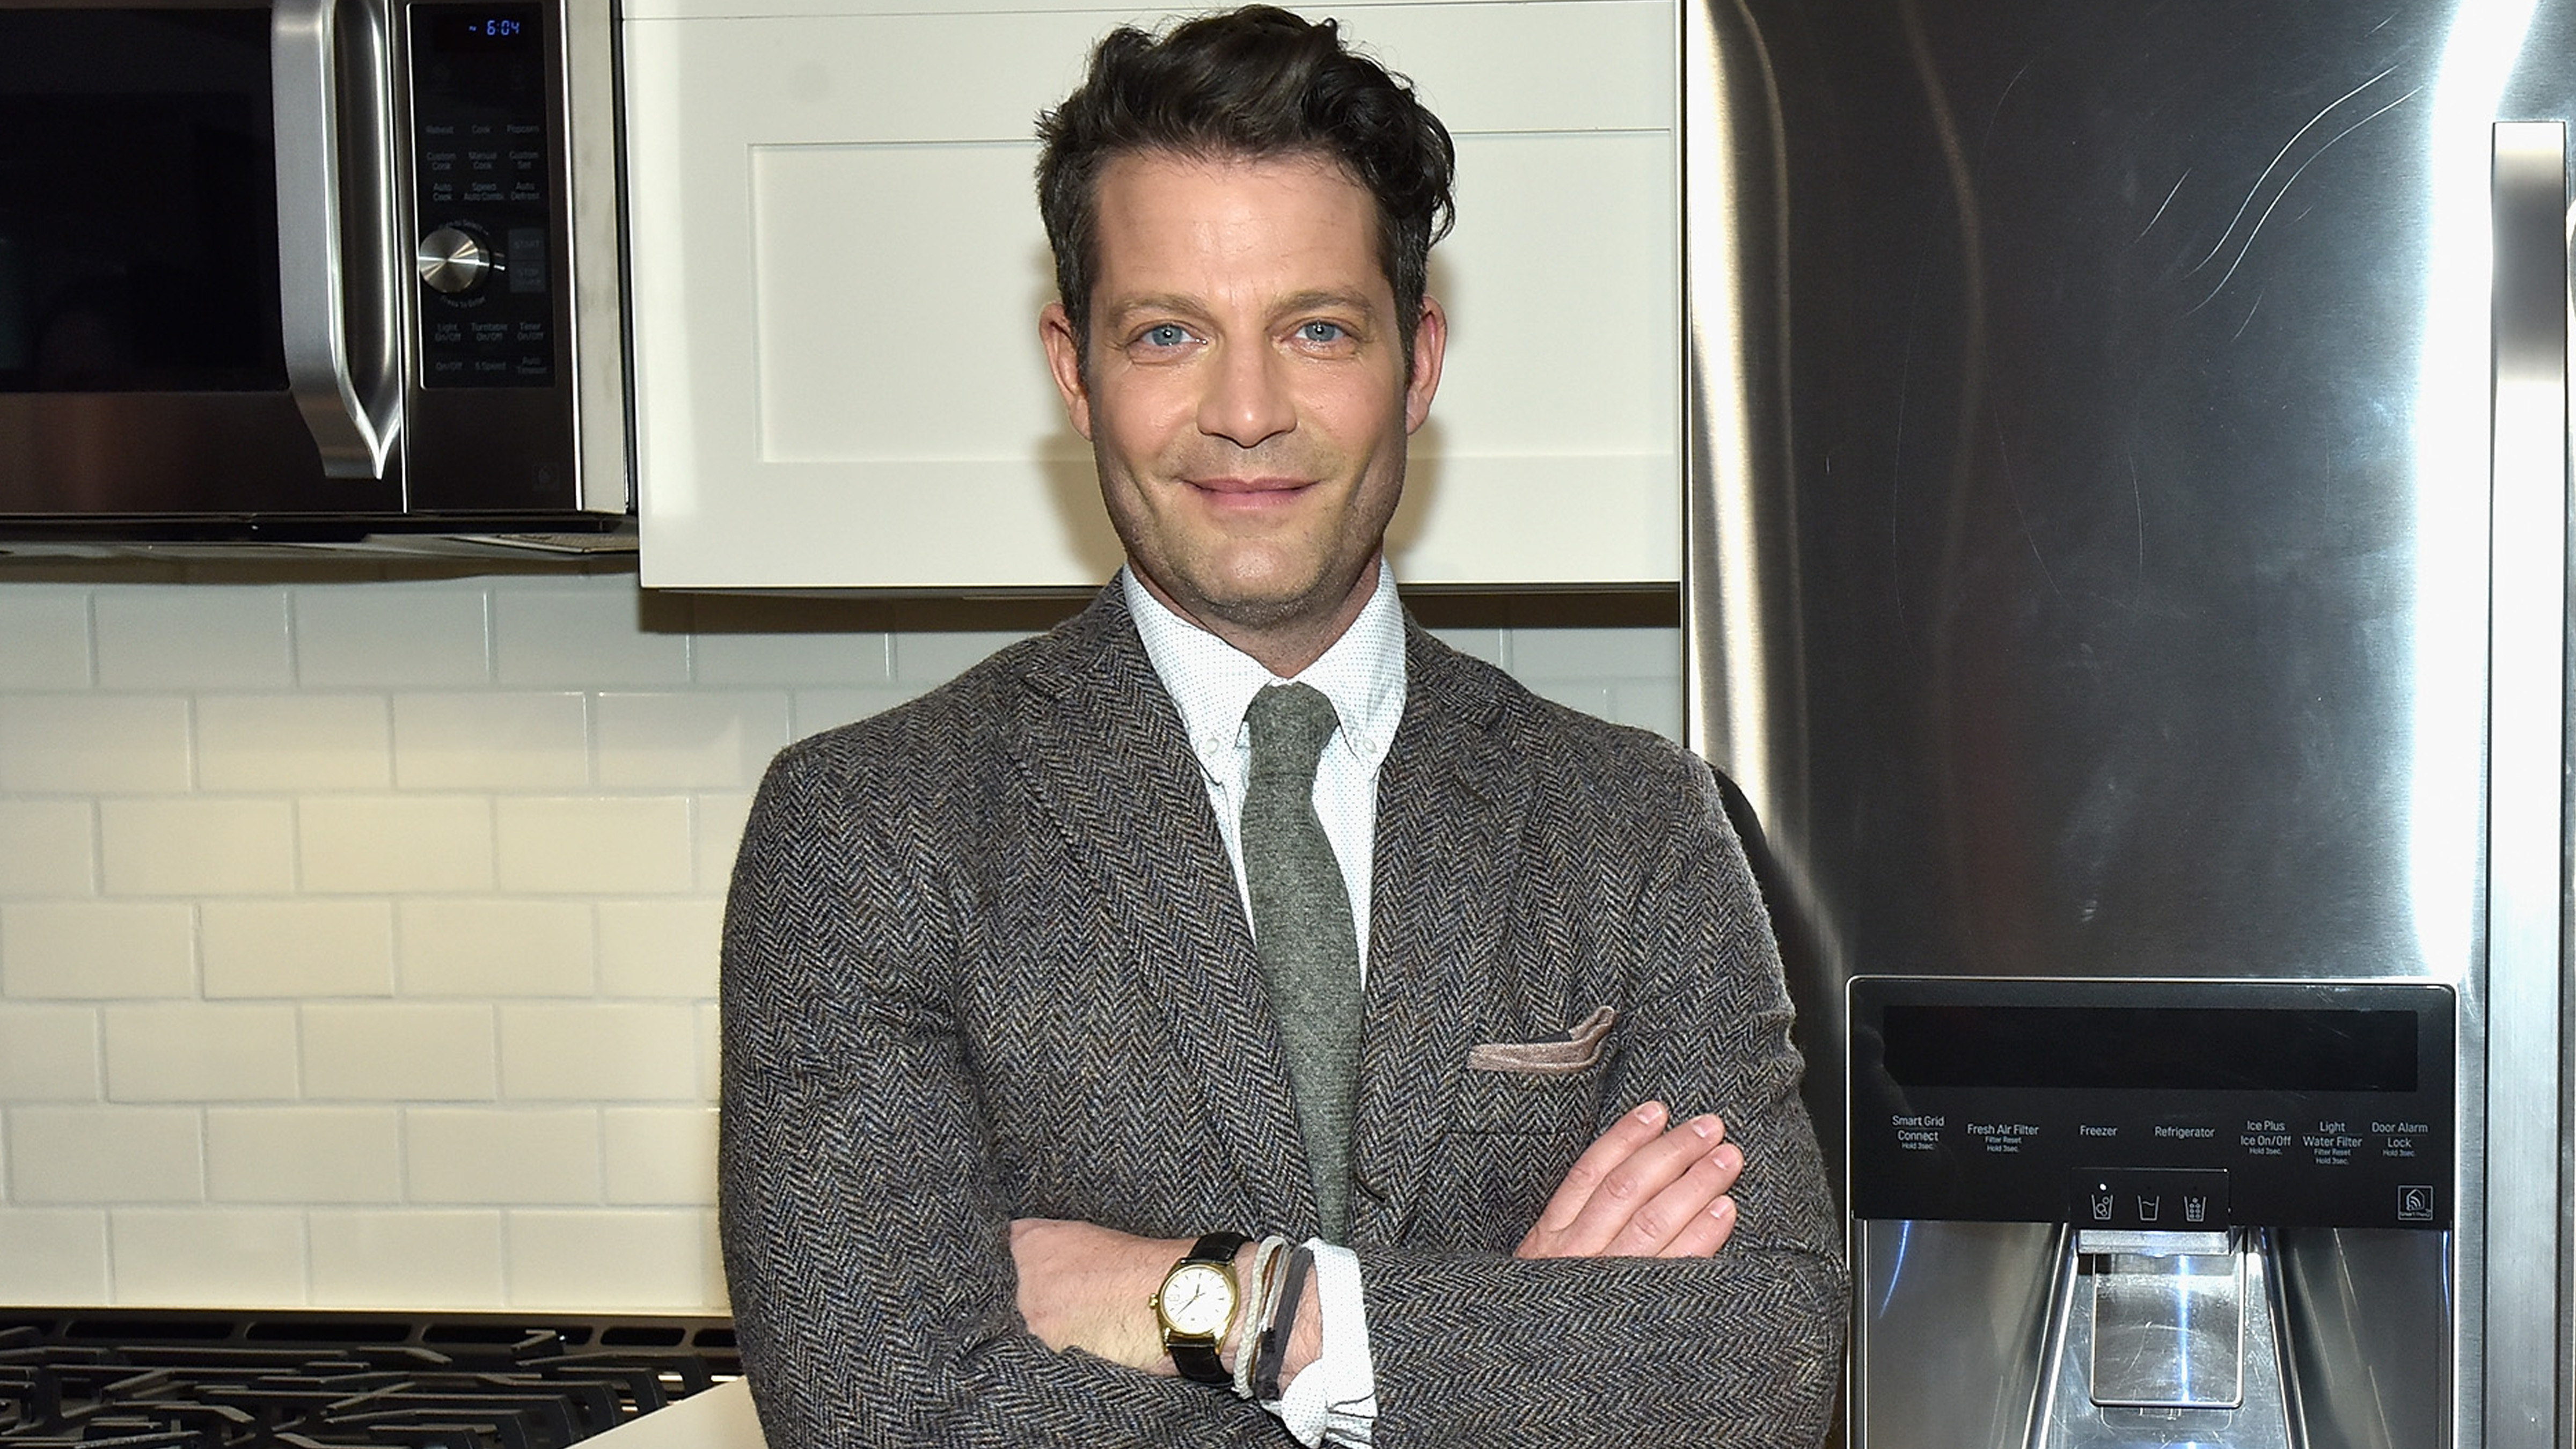 11 Things You Never Knew About Nate Berkus